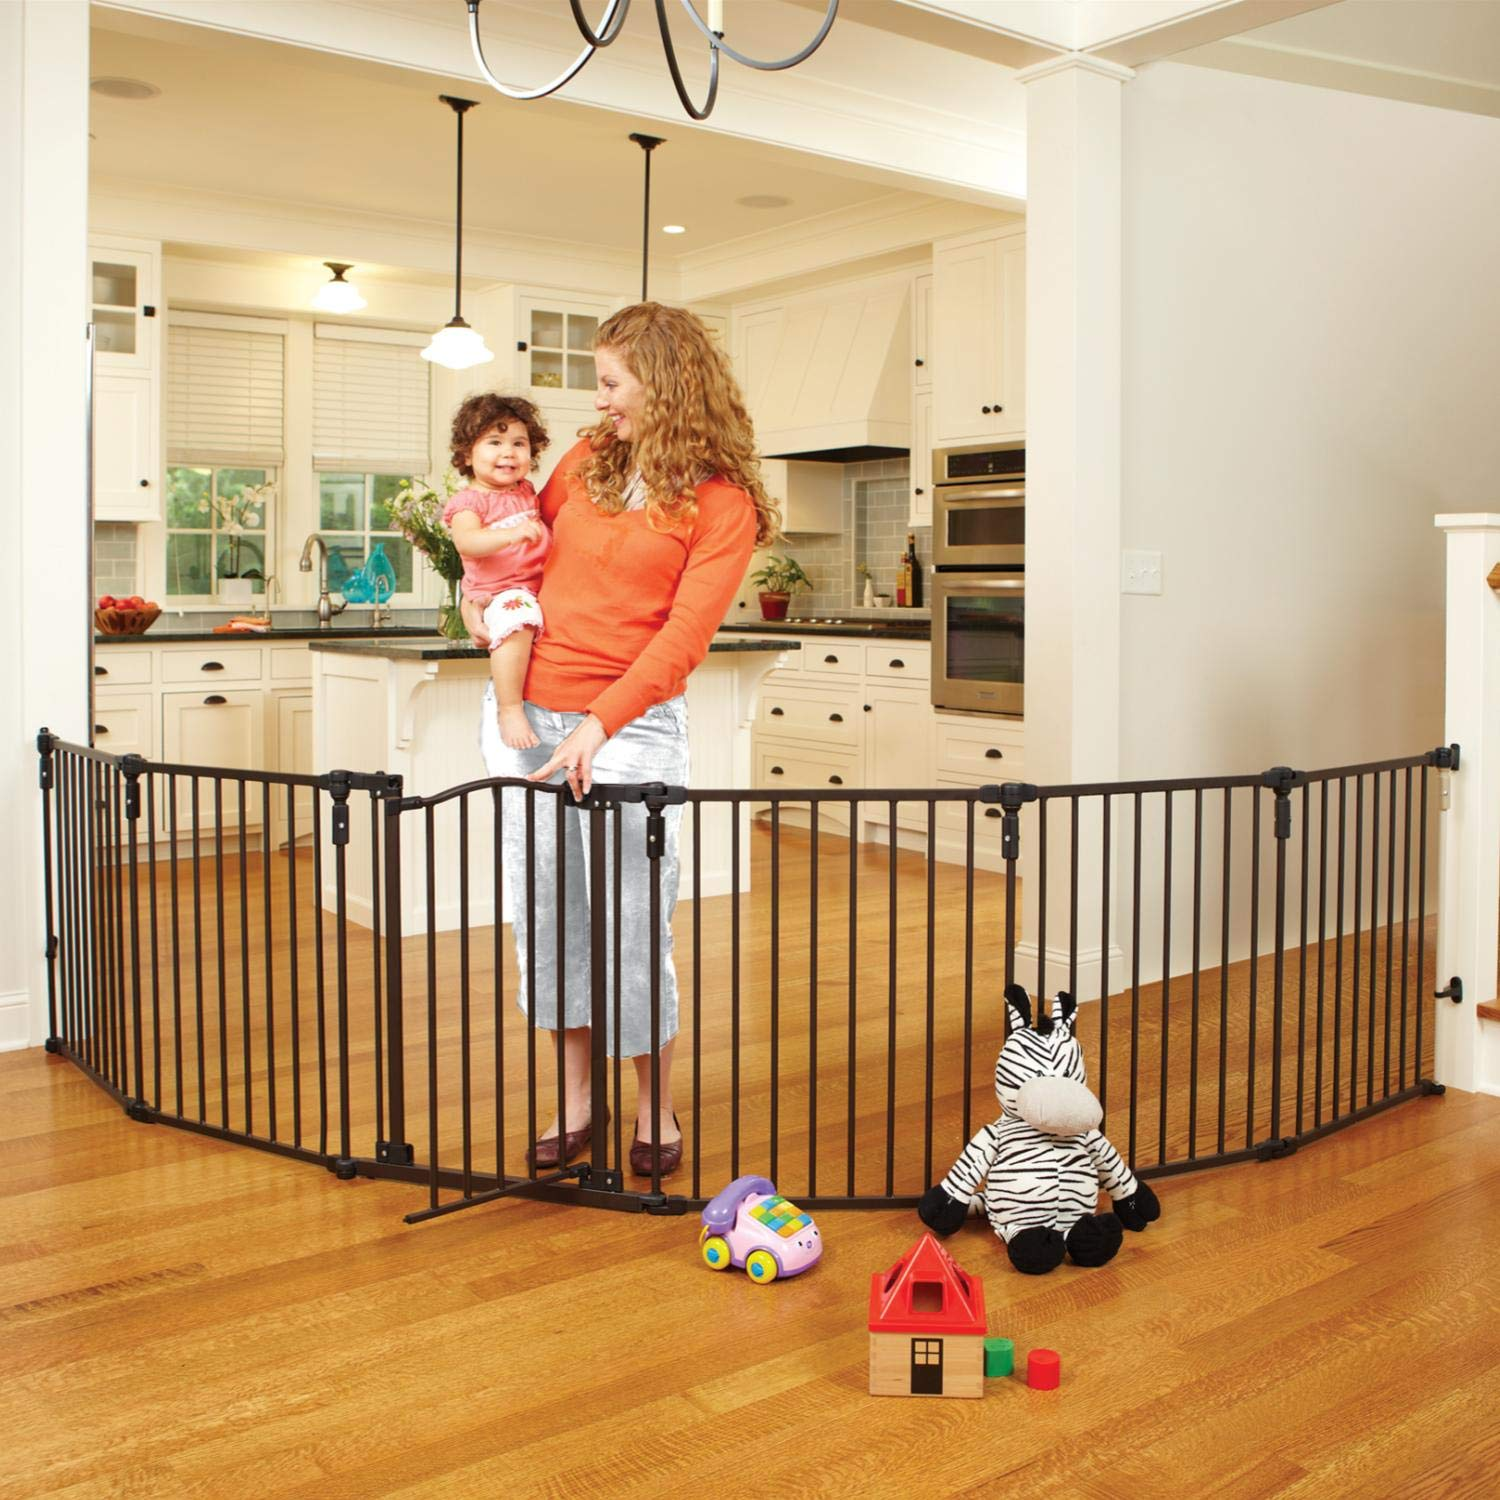 North States 3-in-1 Arched Dé cor Metal Superyard Two-Panel Extension: Adds up to 48' to the 3-in-1 Arched Dé cor Metal Superyard for an extra-wide gate or play yard (48' width, Matte bronze) 4933